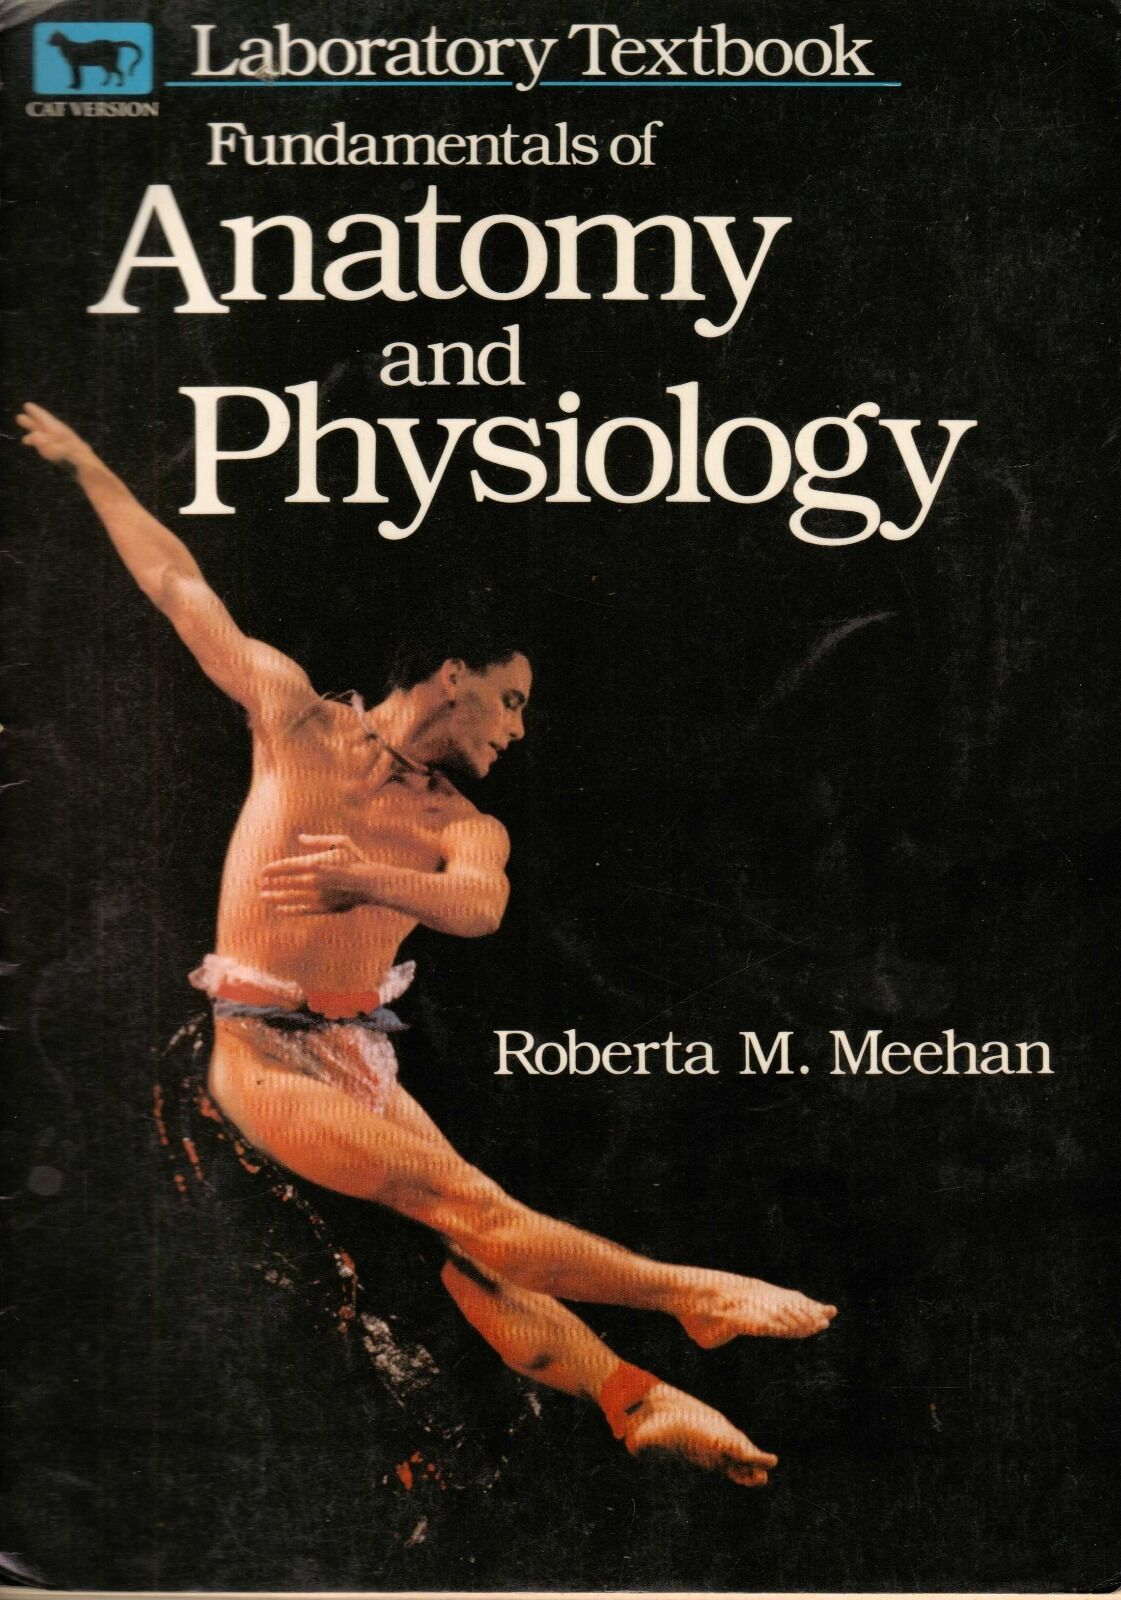 Schön A Laboratory Textbook Of Anatomy And Physiology Ideen ...